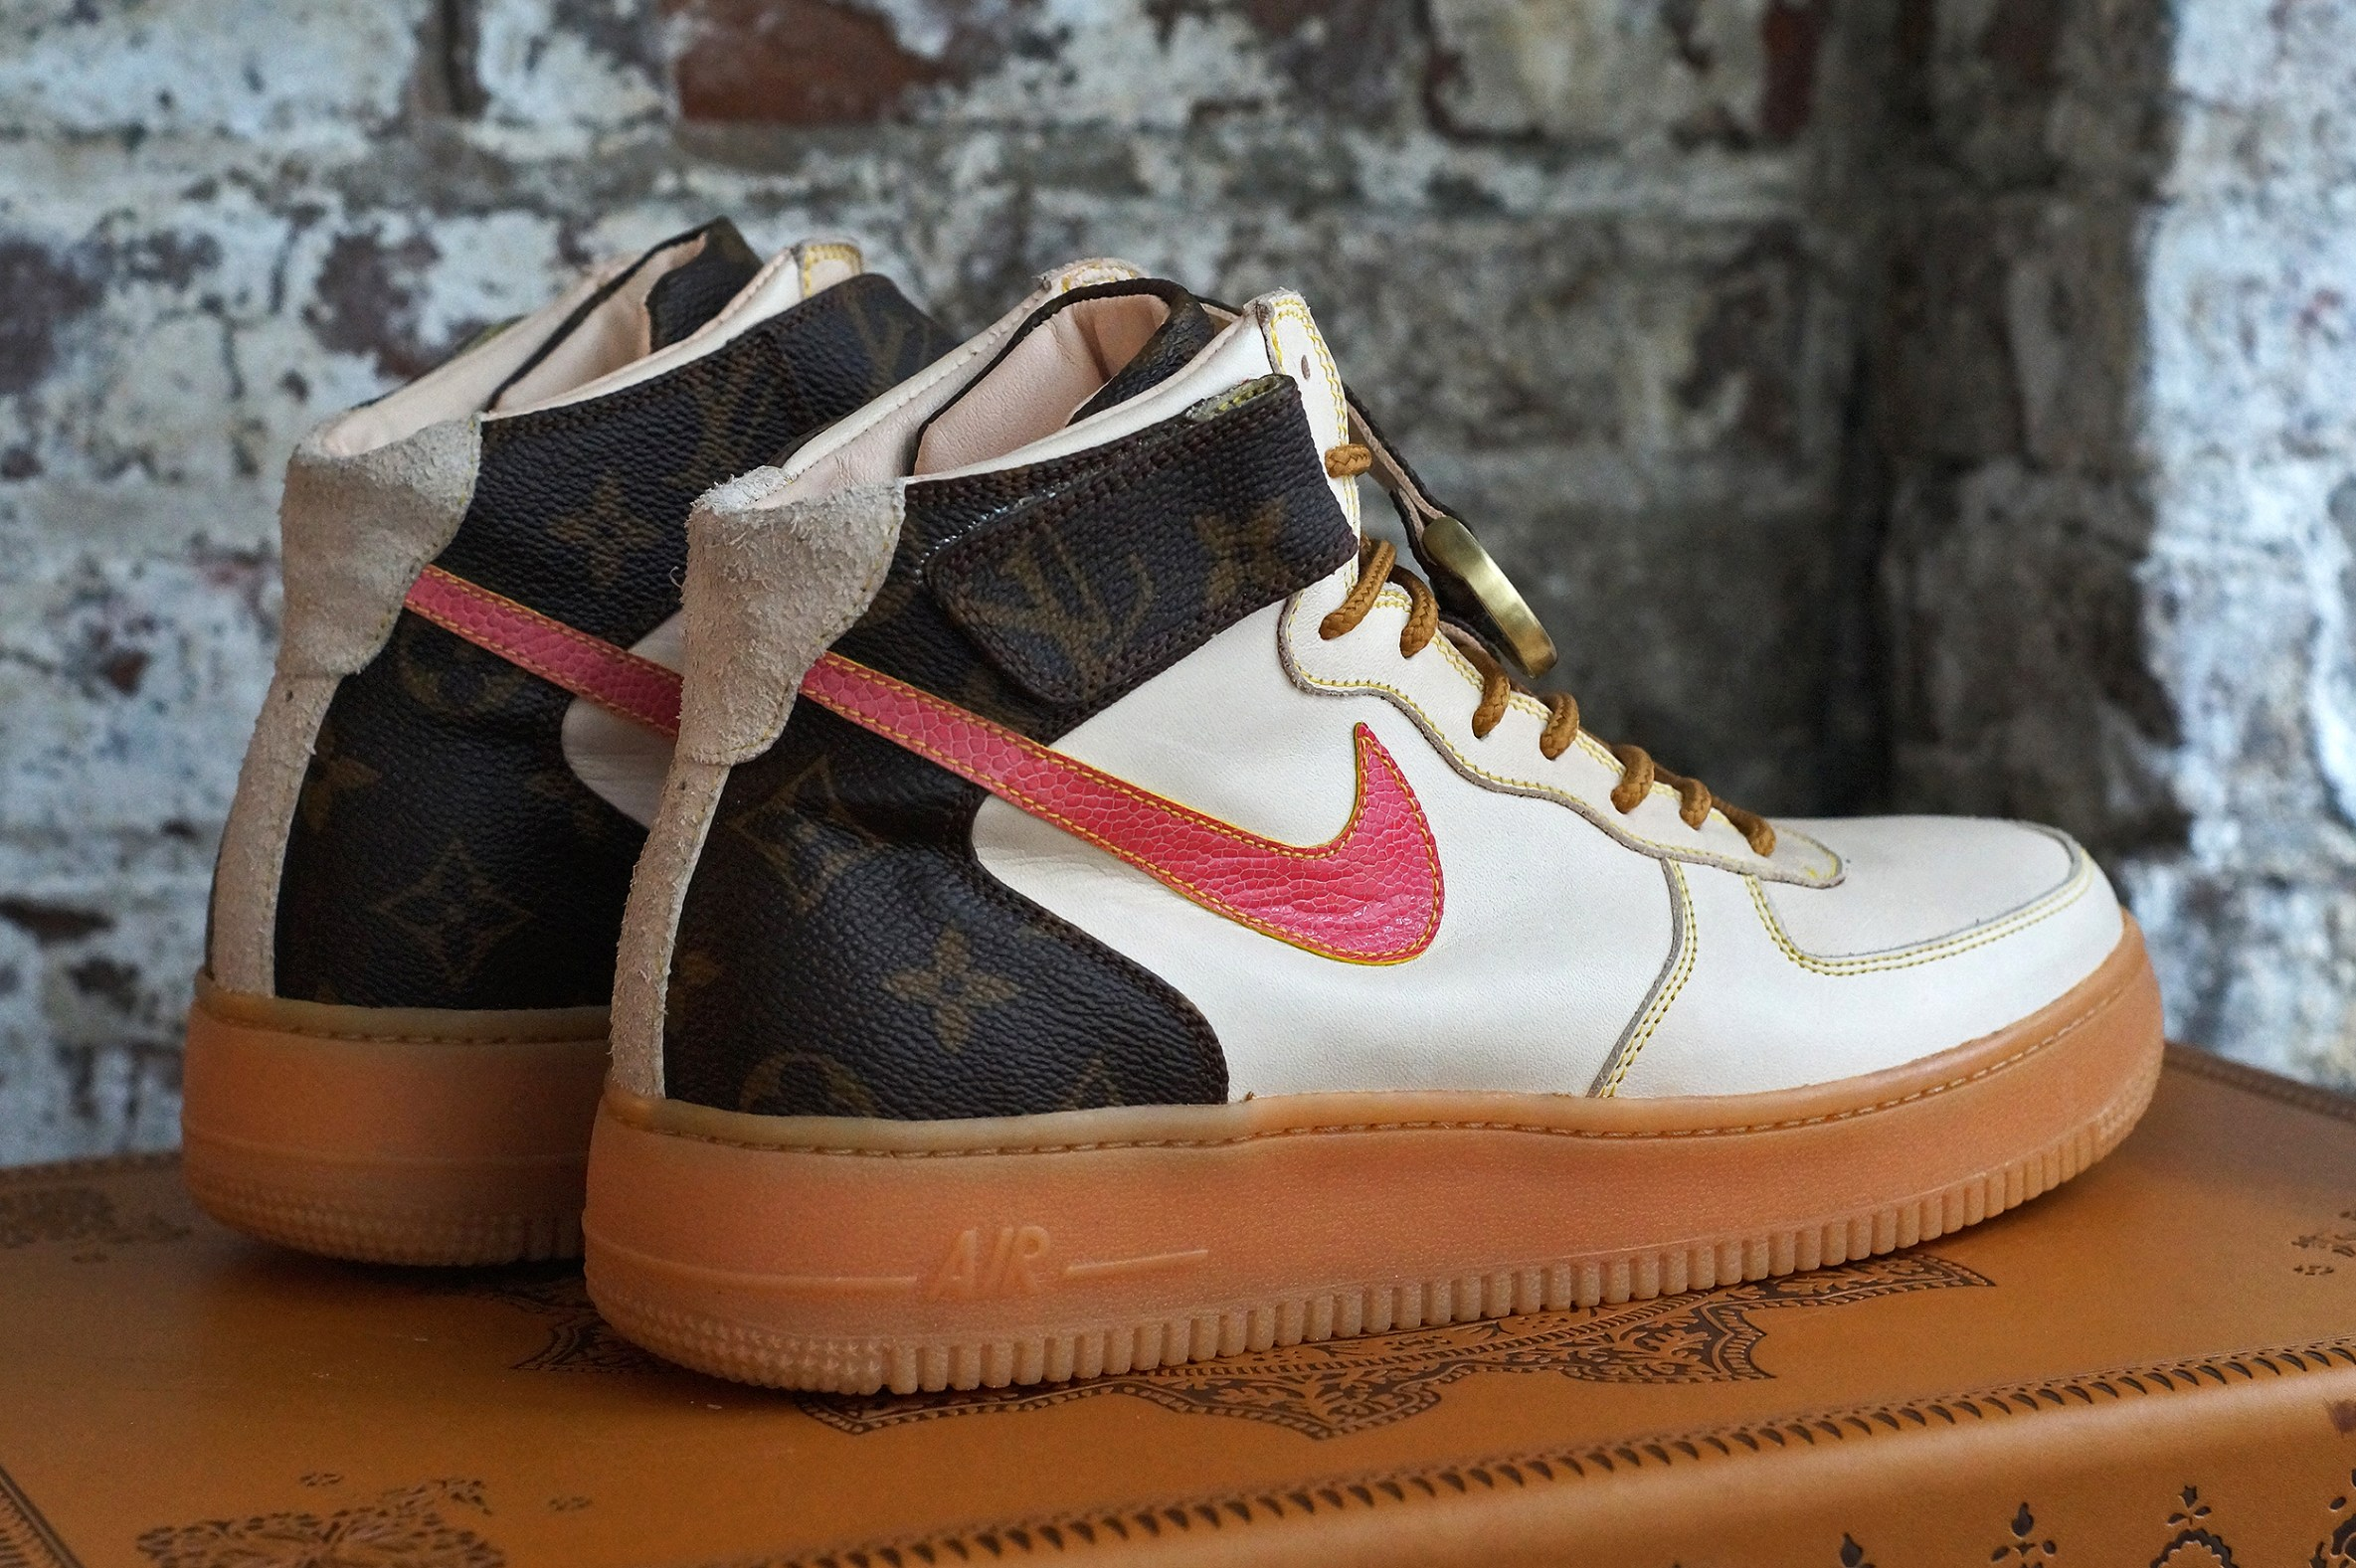 jbf-customs-louis-vuitton-af1-3